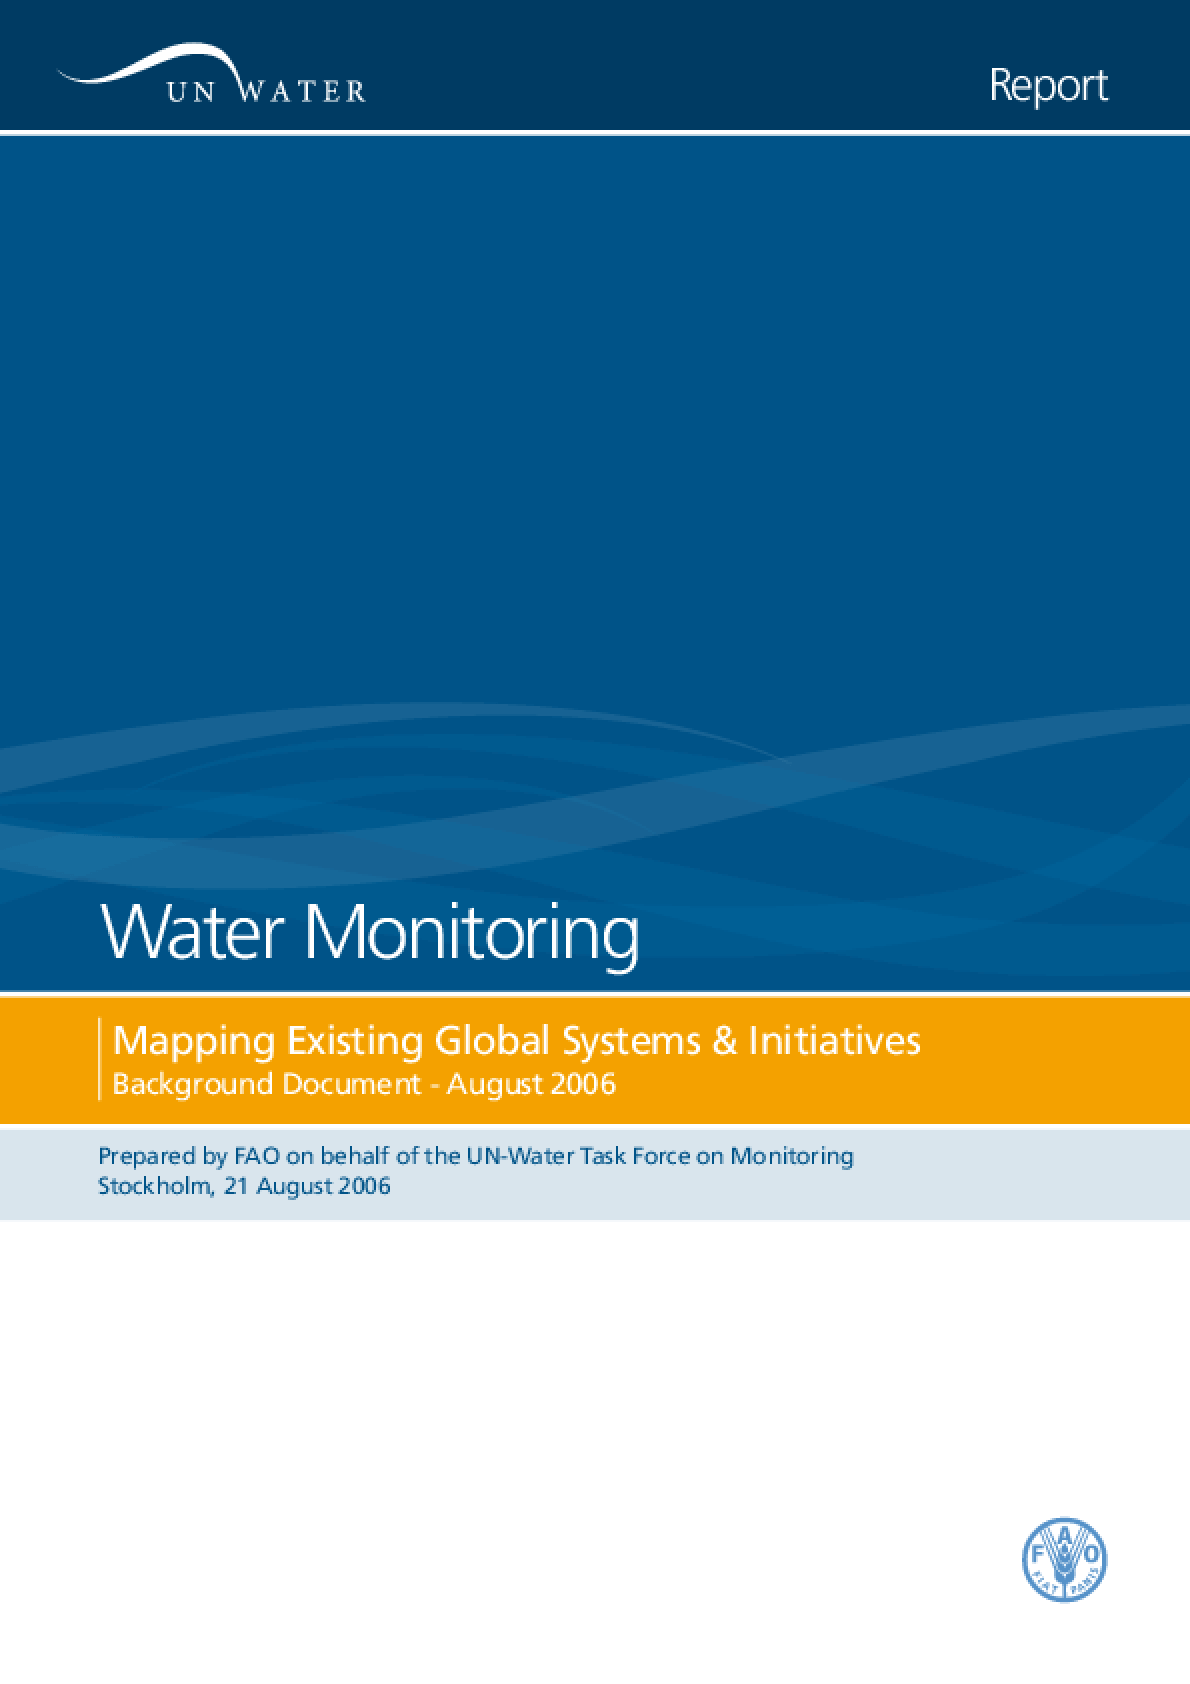 Water Monitoring: Mapping Existing Global Systems and Initiatives